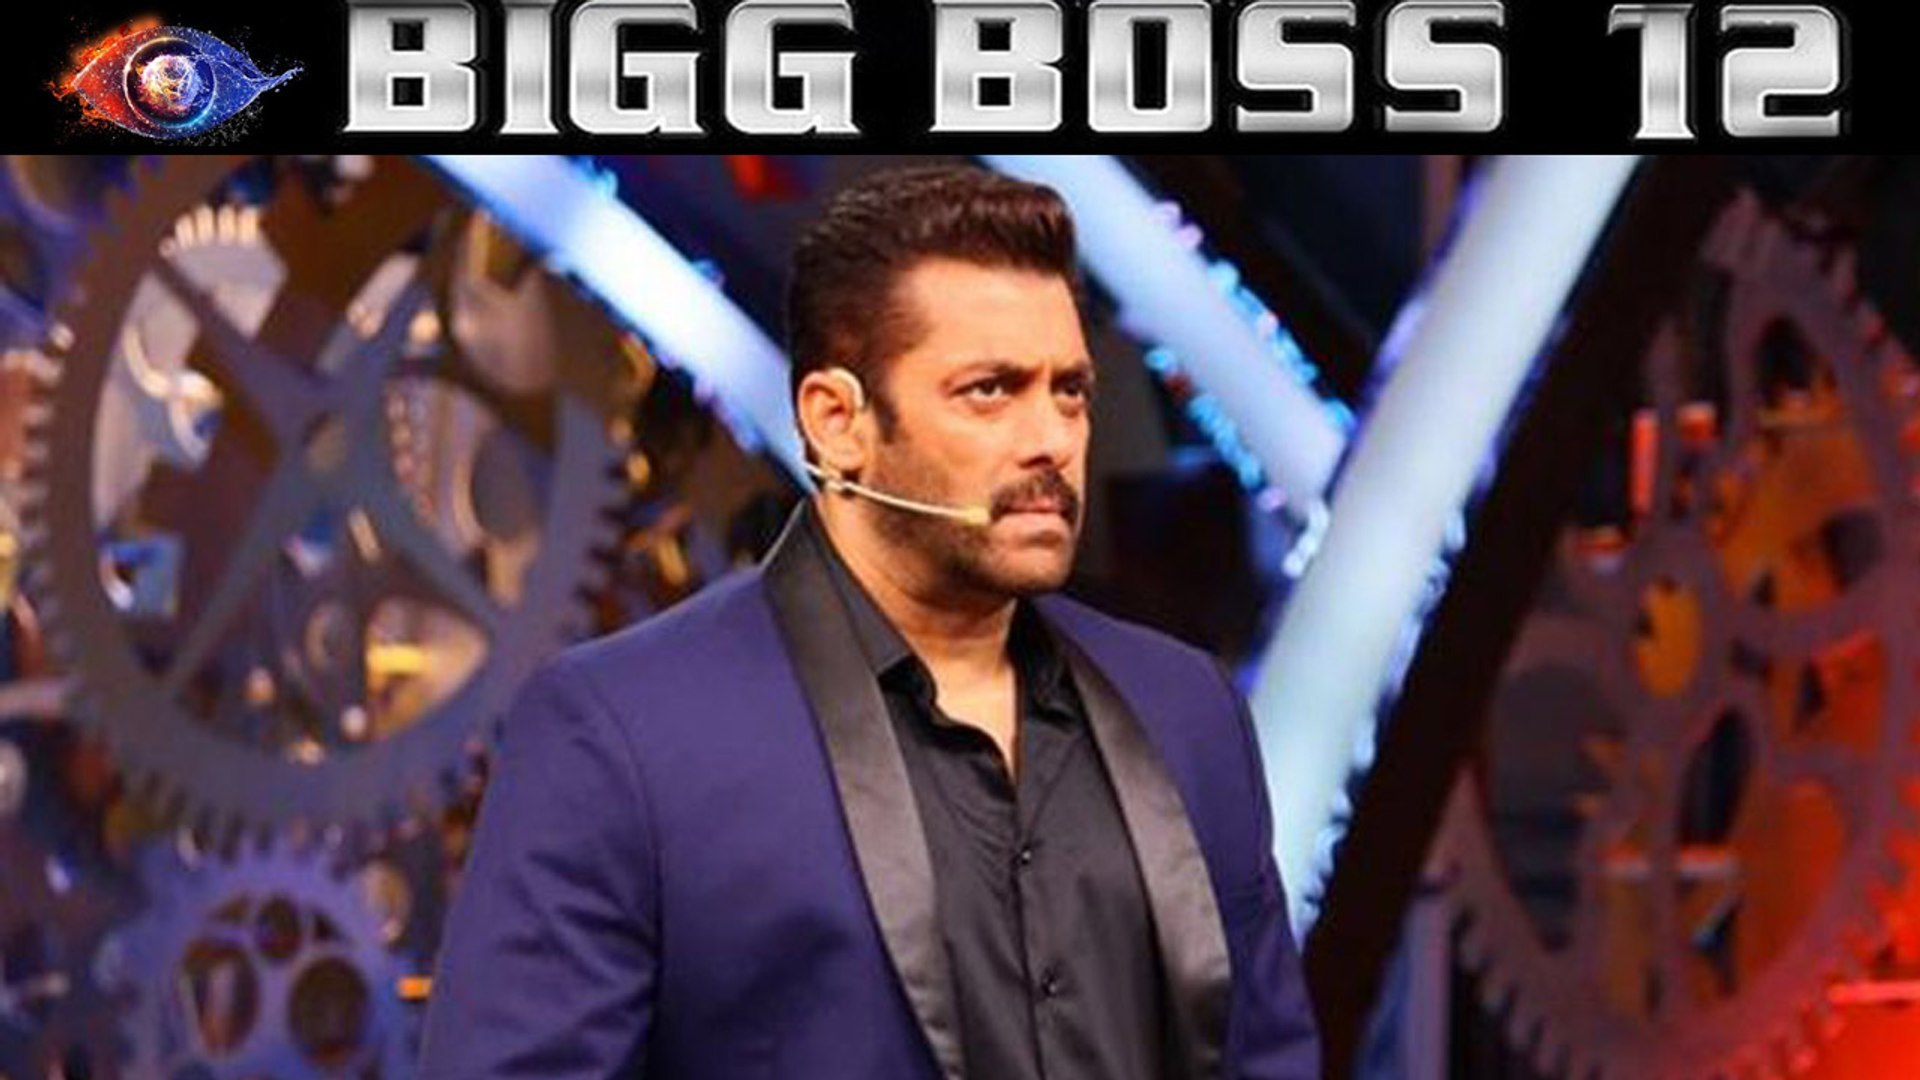 Bigg Boss 12 time changed to 9 PM because of Salman Khan ! | FilmiBeat